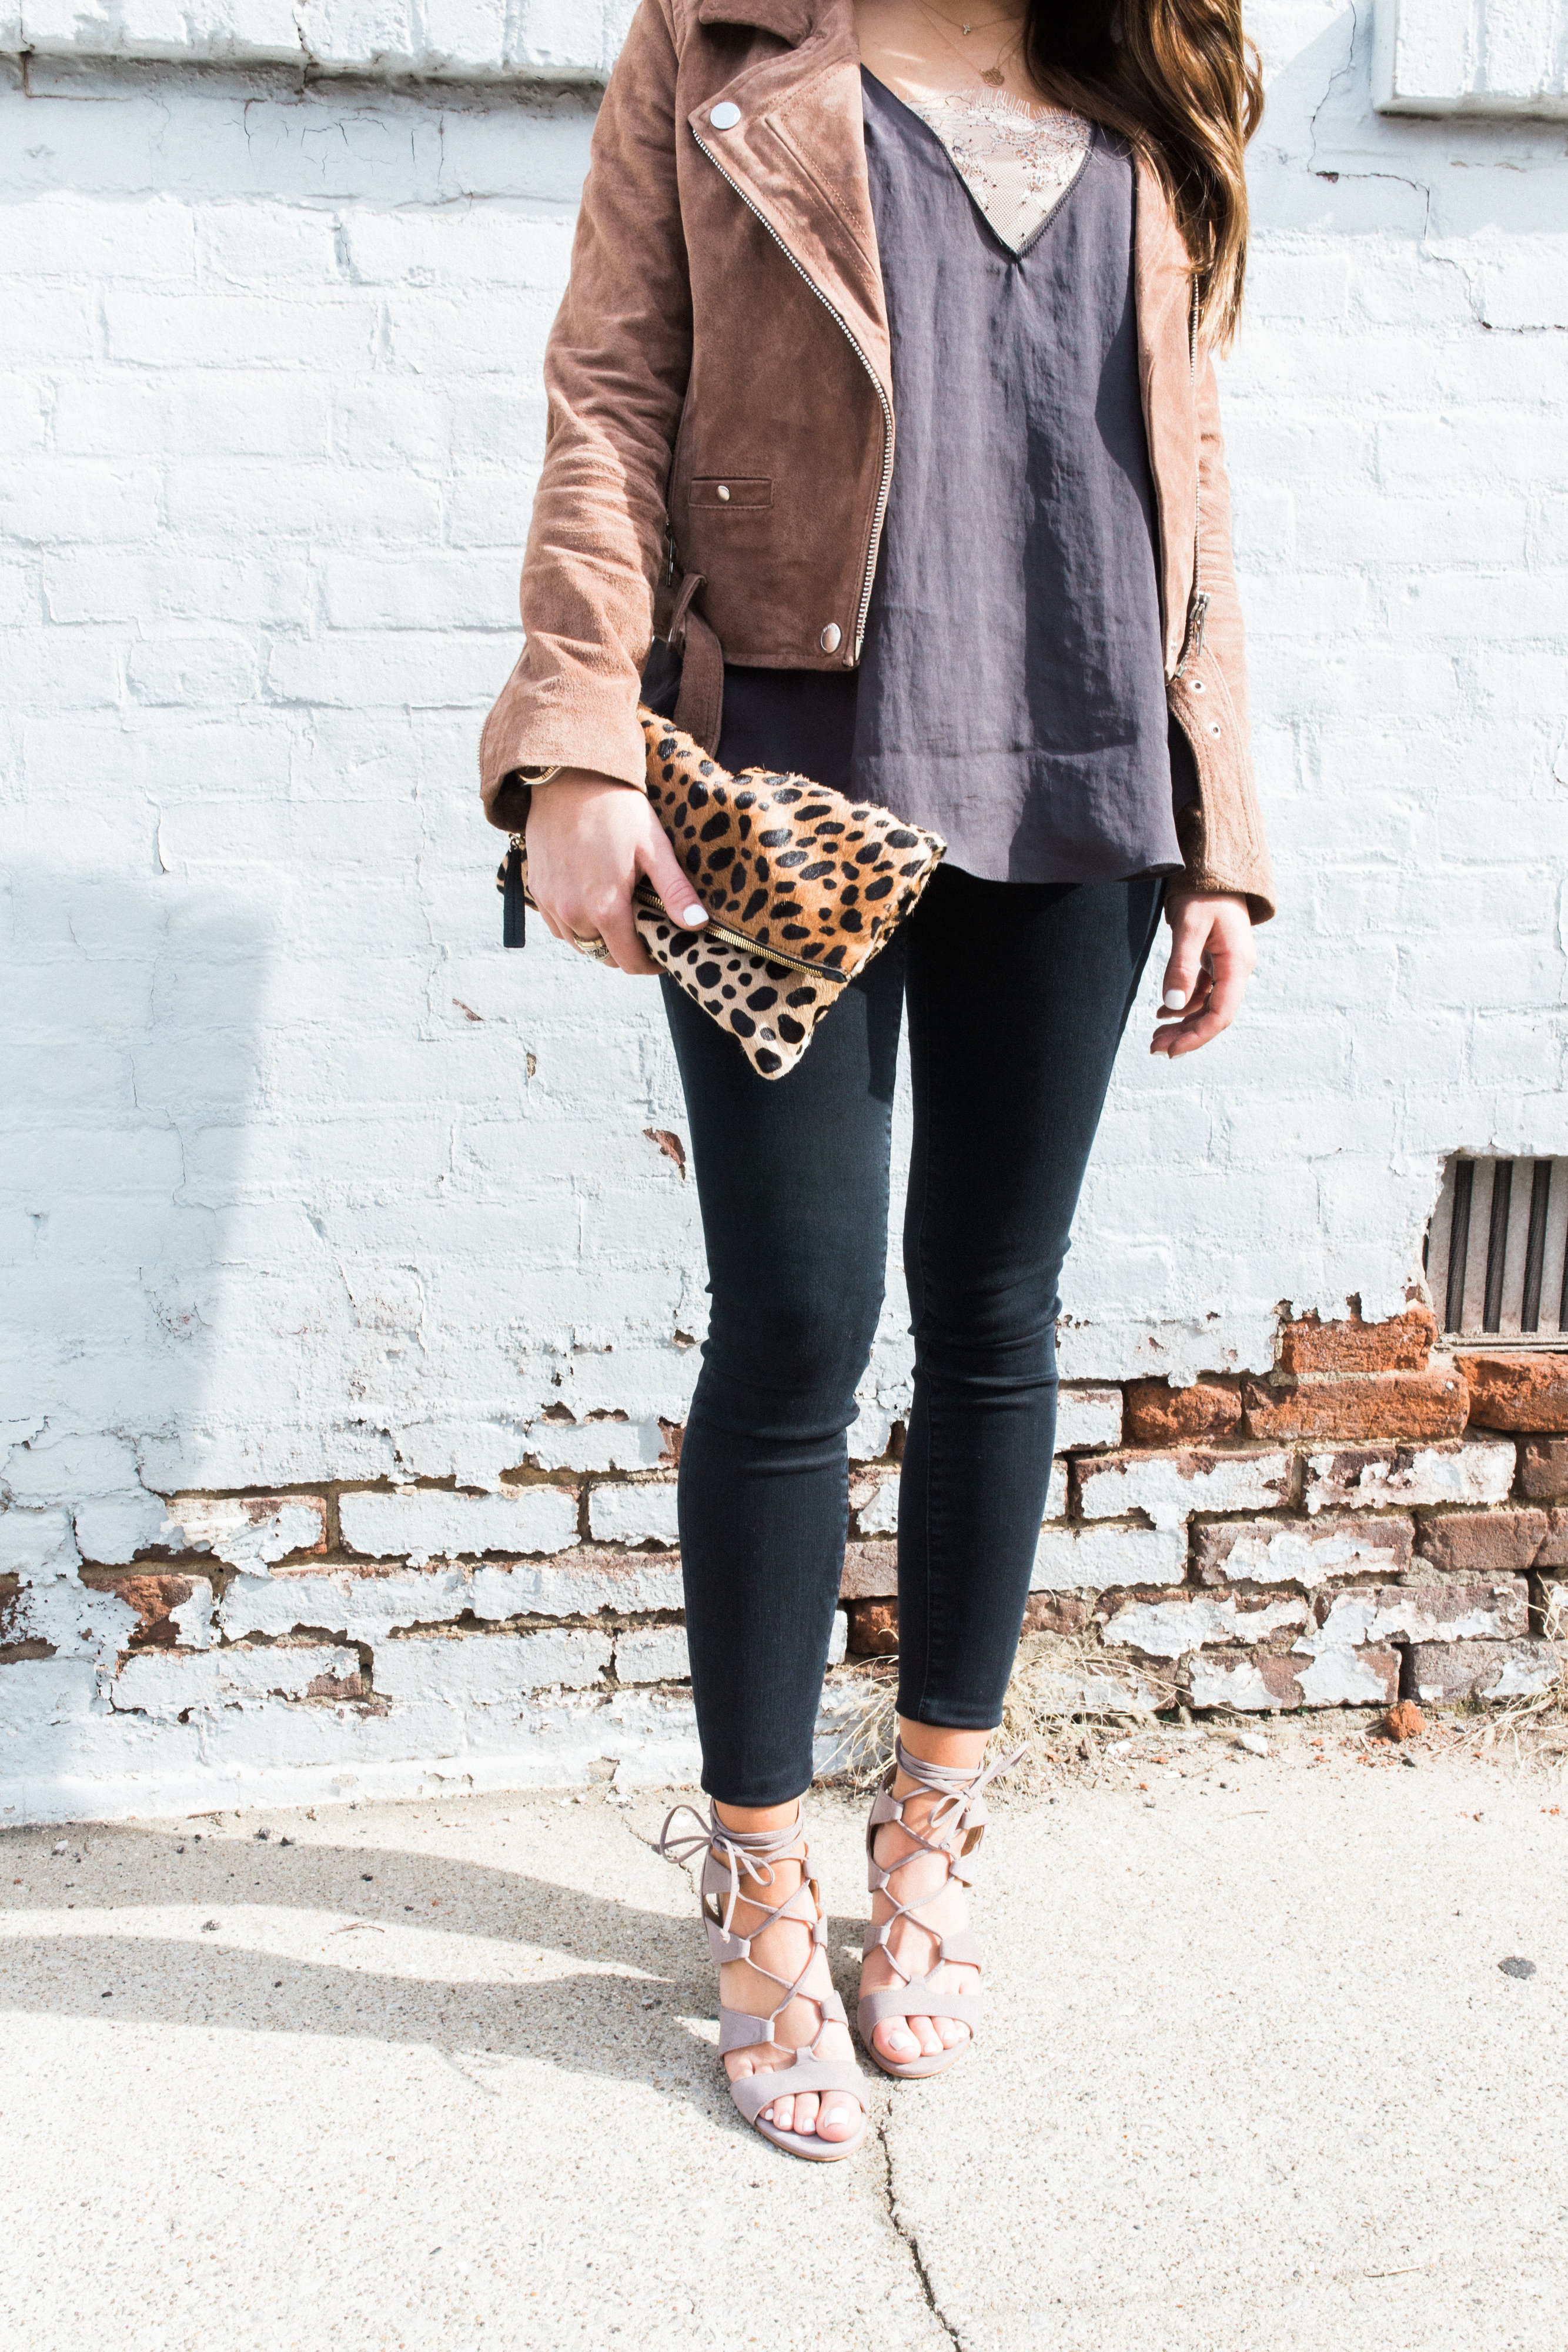 Spring Outfit Inspiration // Ft. BlankNYC Suede Jacket, Free People Cami, Vince Camuto Lace Up Sandals, Clare V. Leopard Clutch